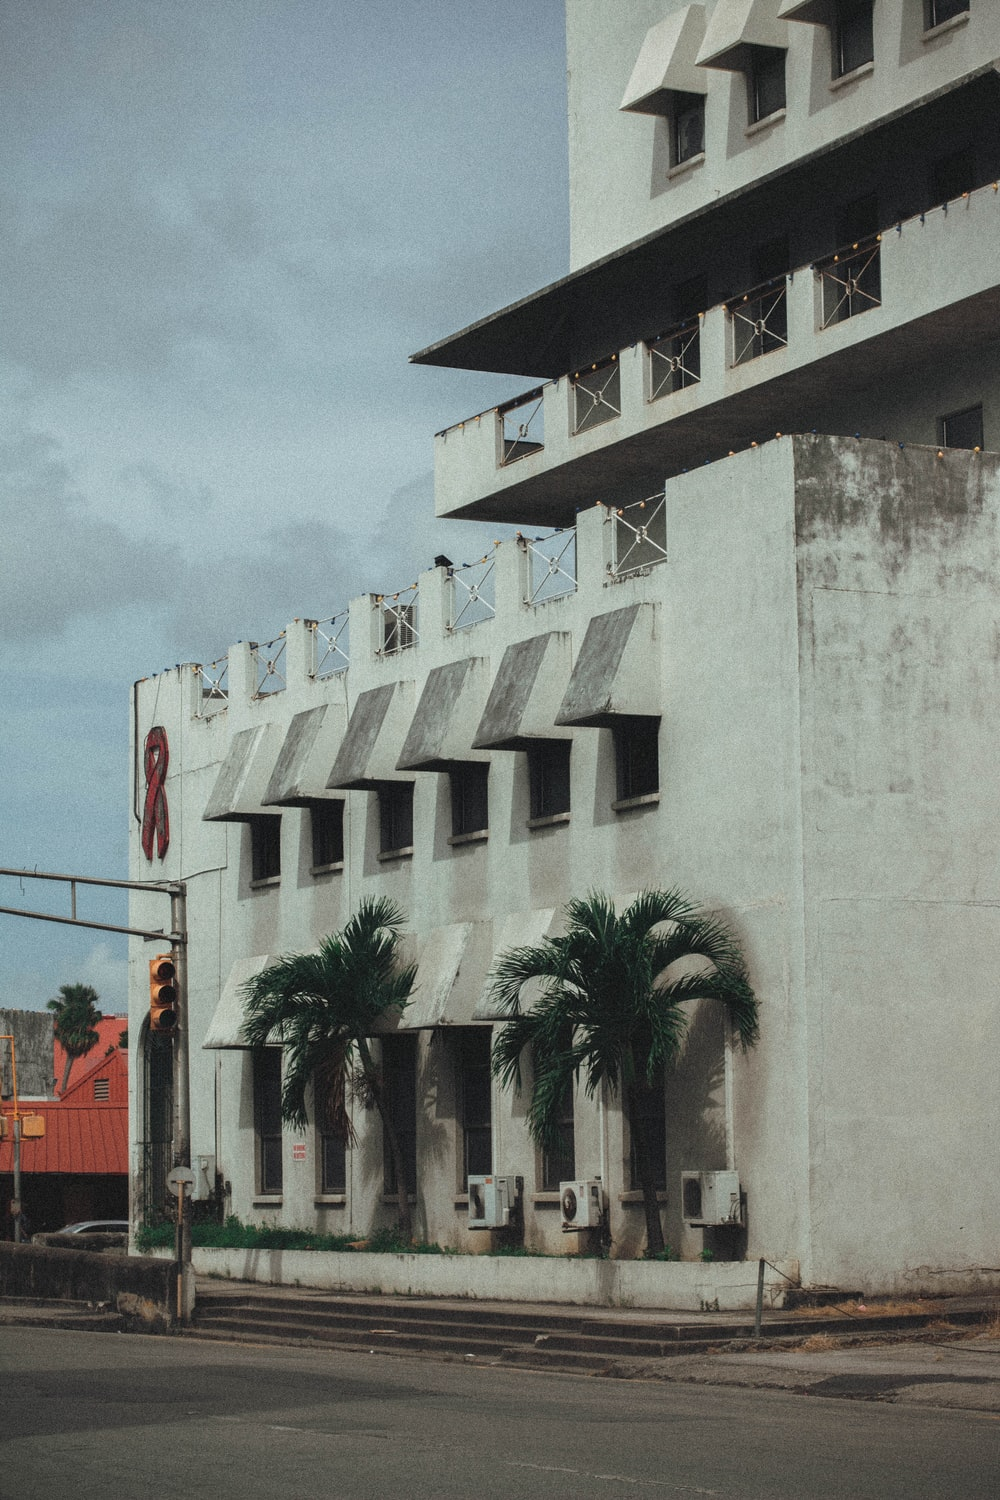 white concrete building near palm trees during daytime